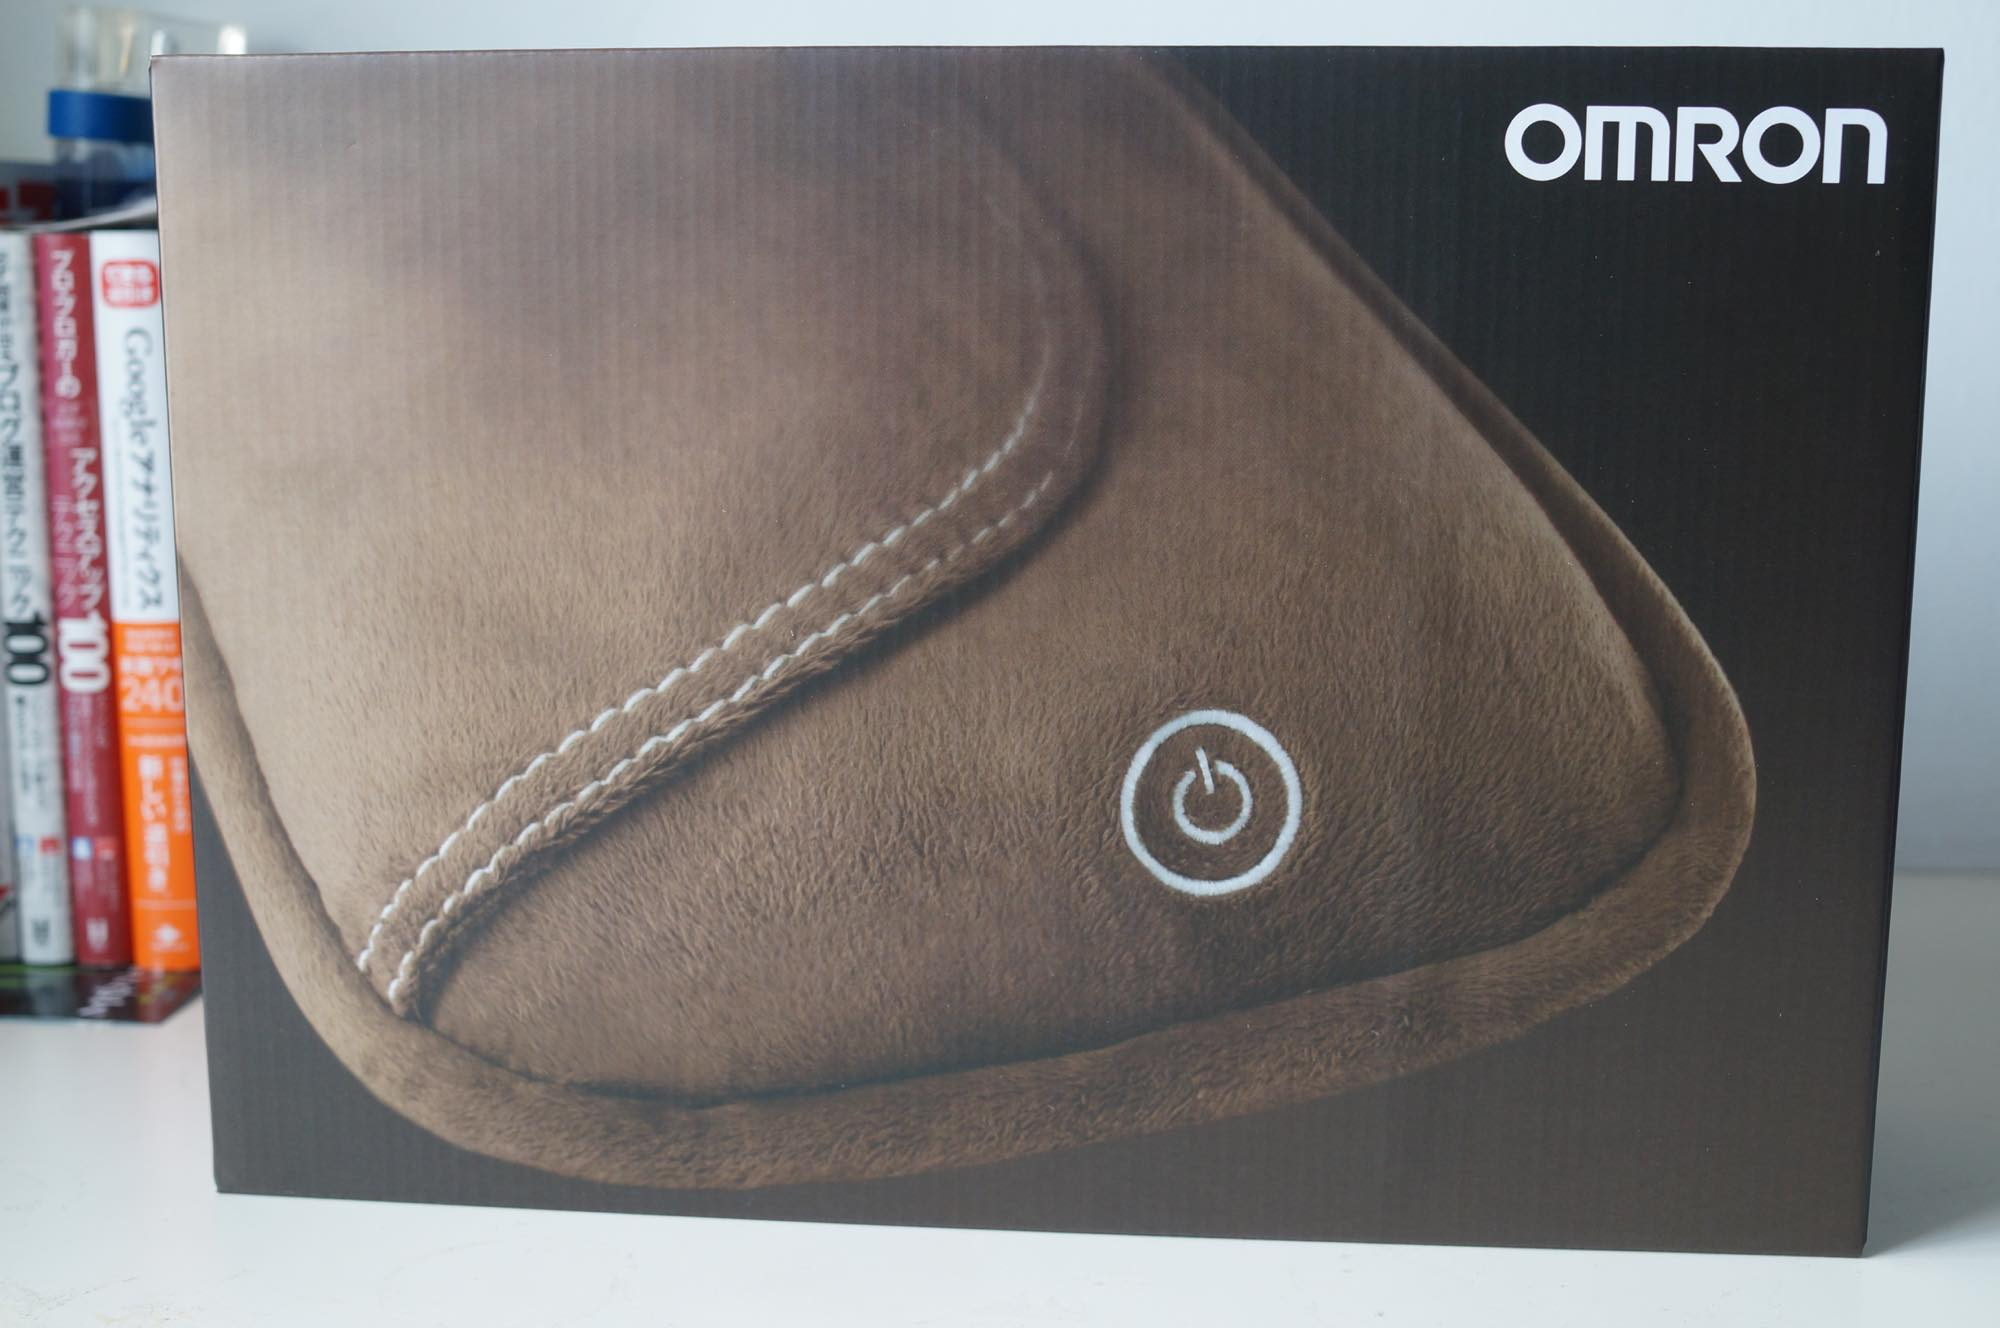 omron-massager1